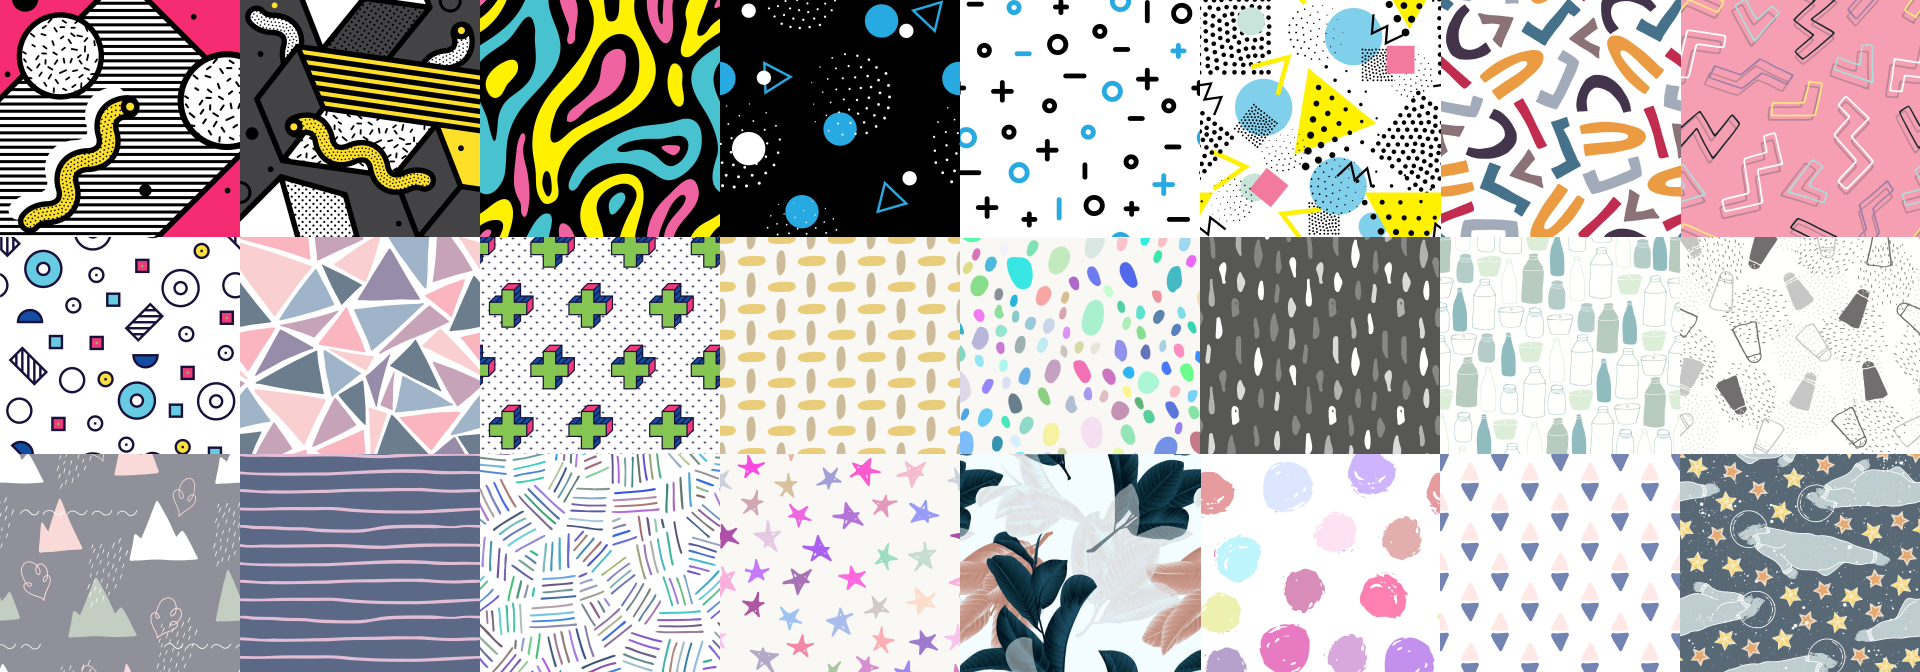 Various vector pattern backgrounds that can be used to replace single color backgrounds in videos